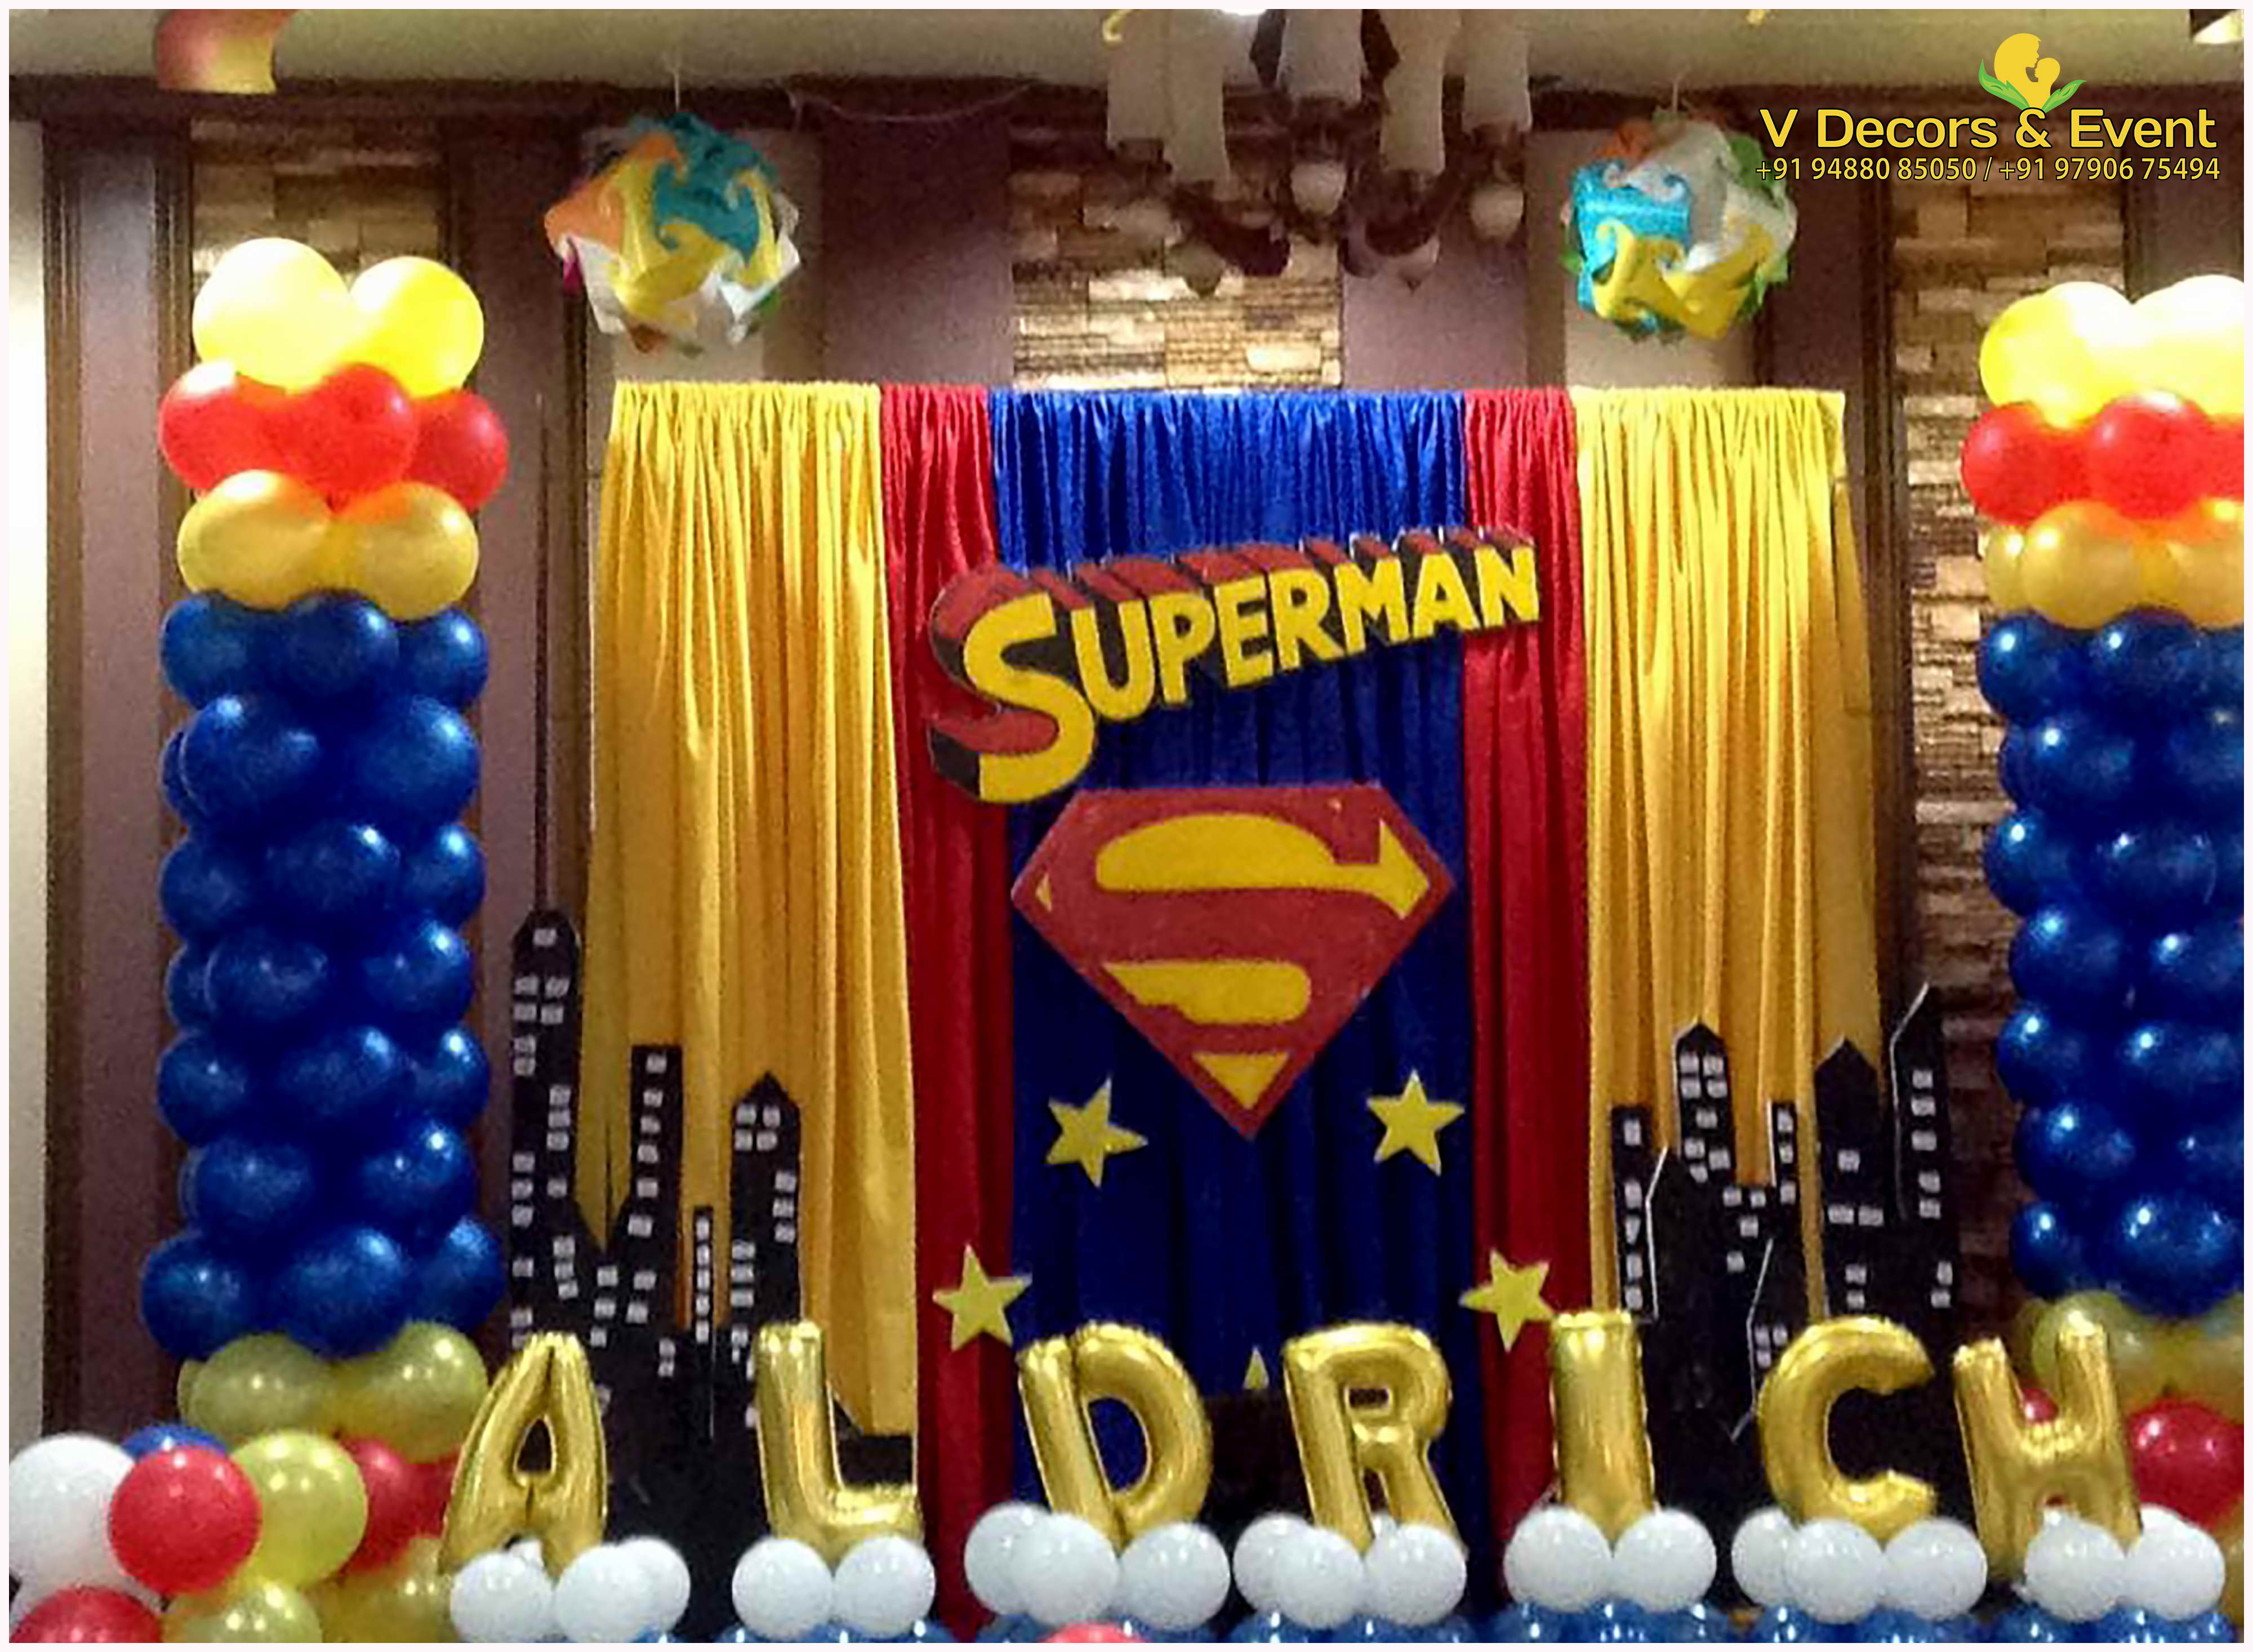 Themed birthday superman v decors and events 9488085050 for Decor vs decoration